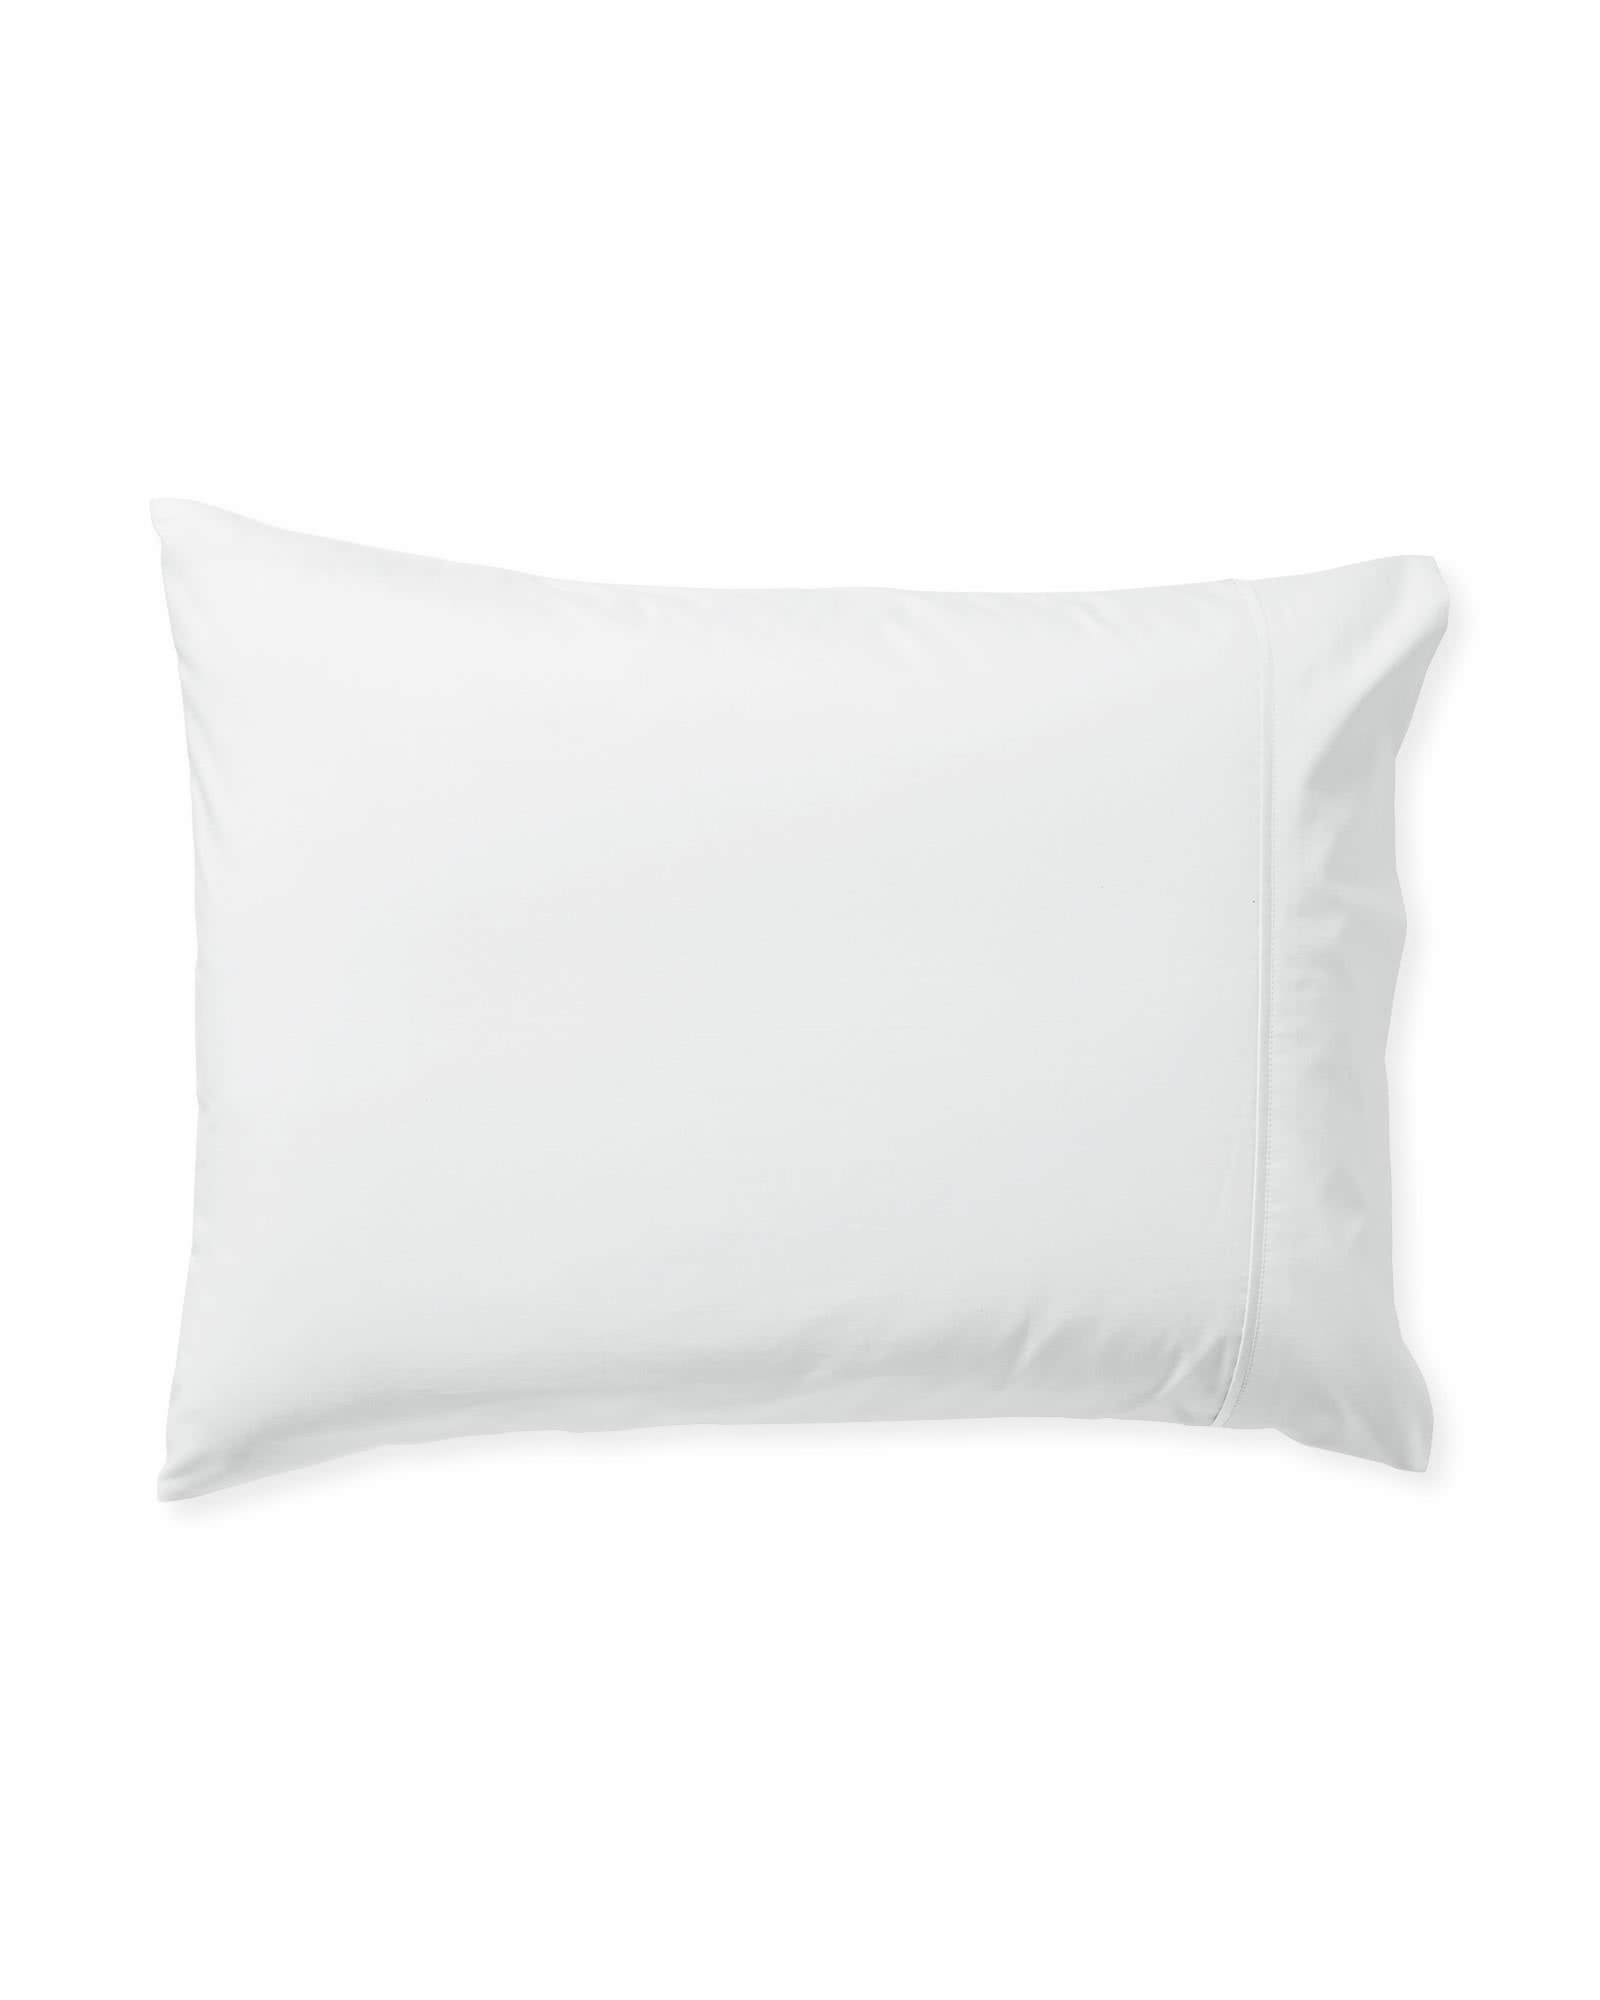 Beach Club Pillowcases (Extra Set of 2), White